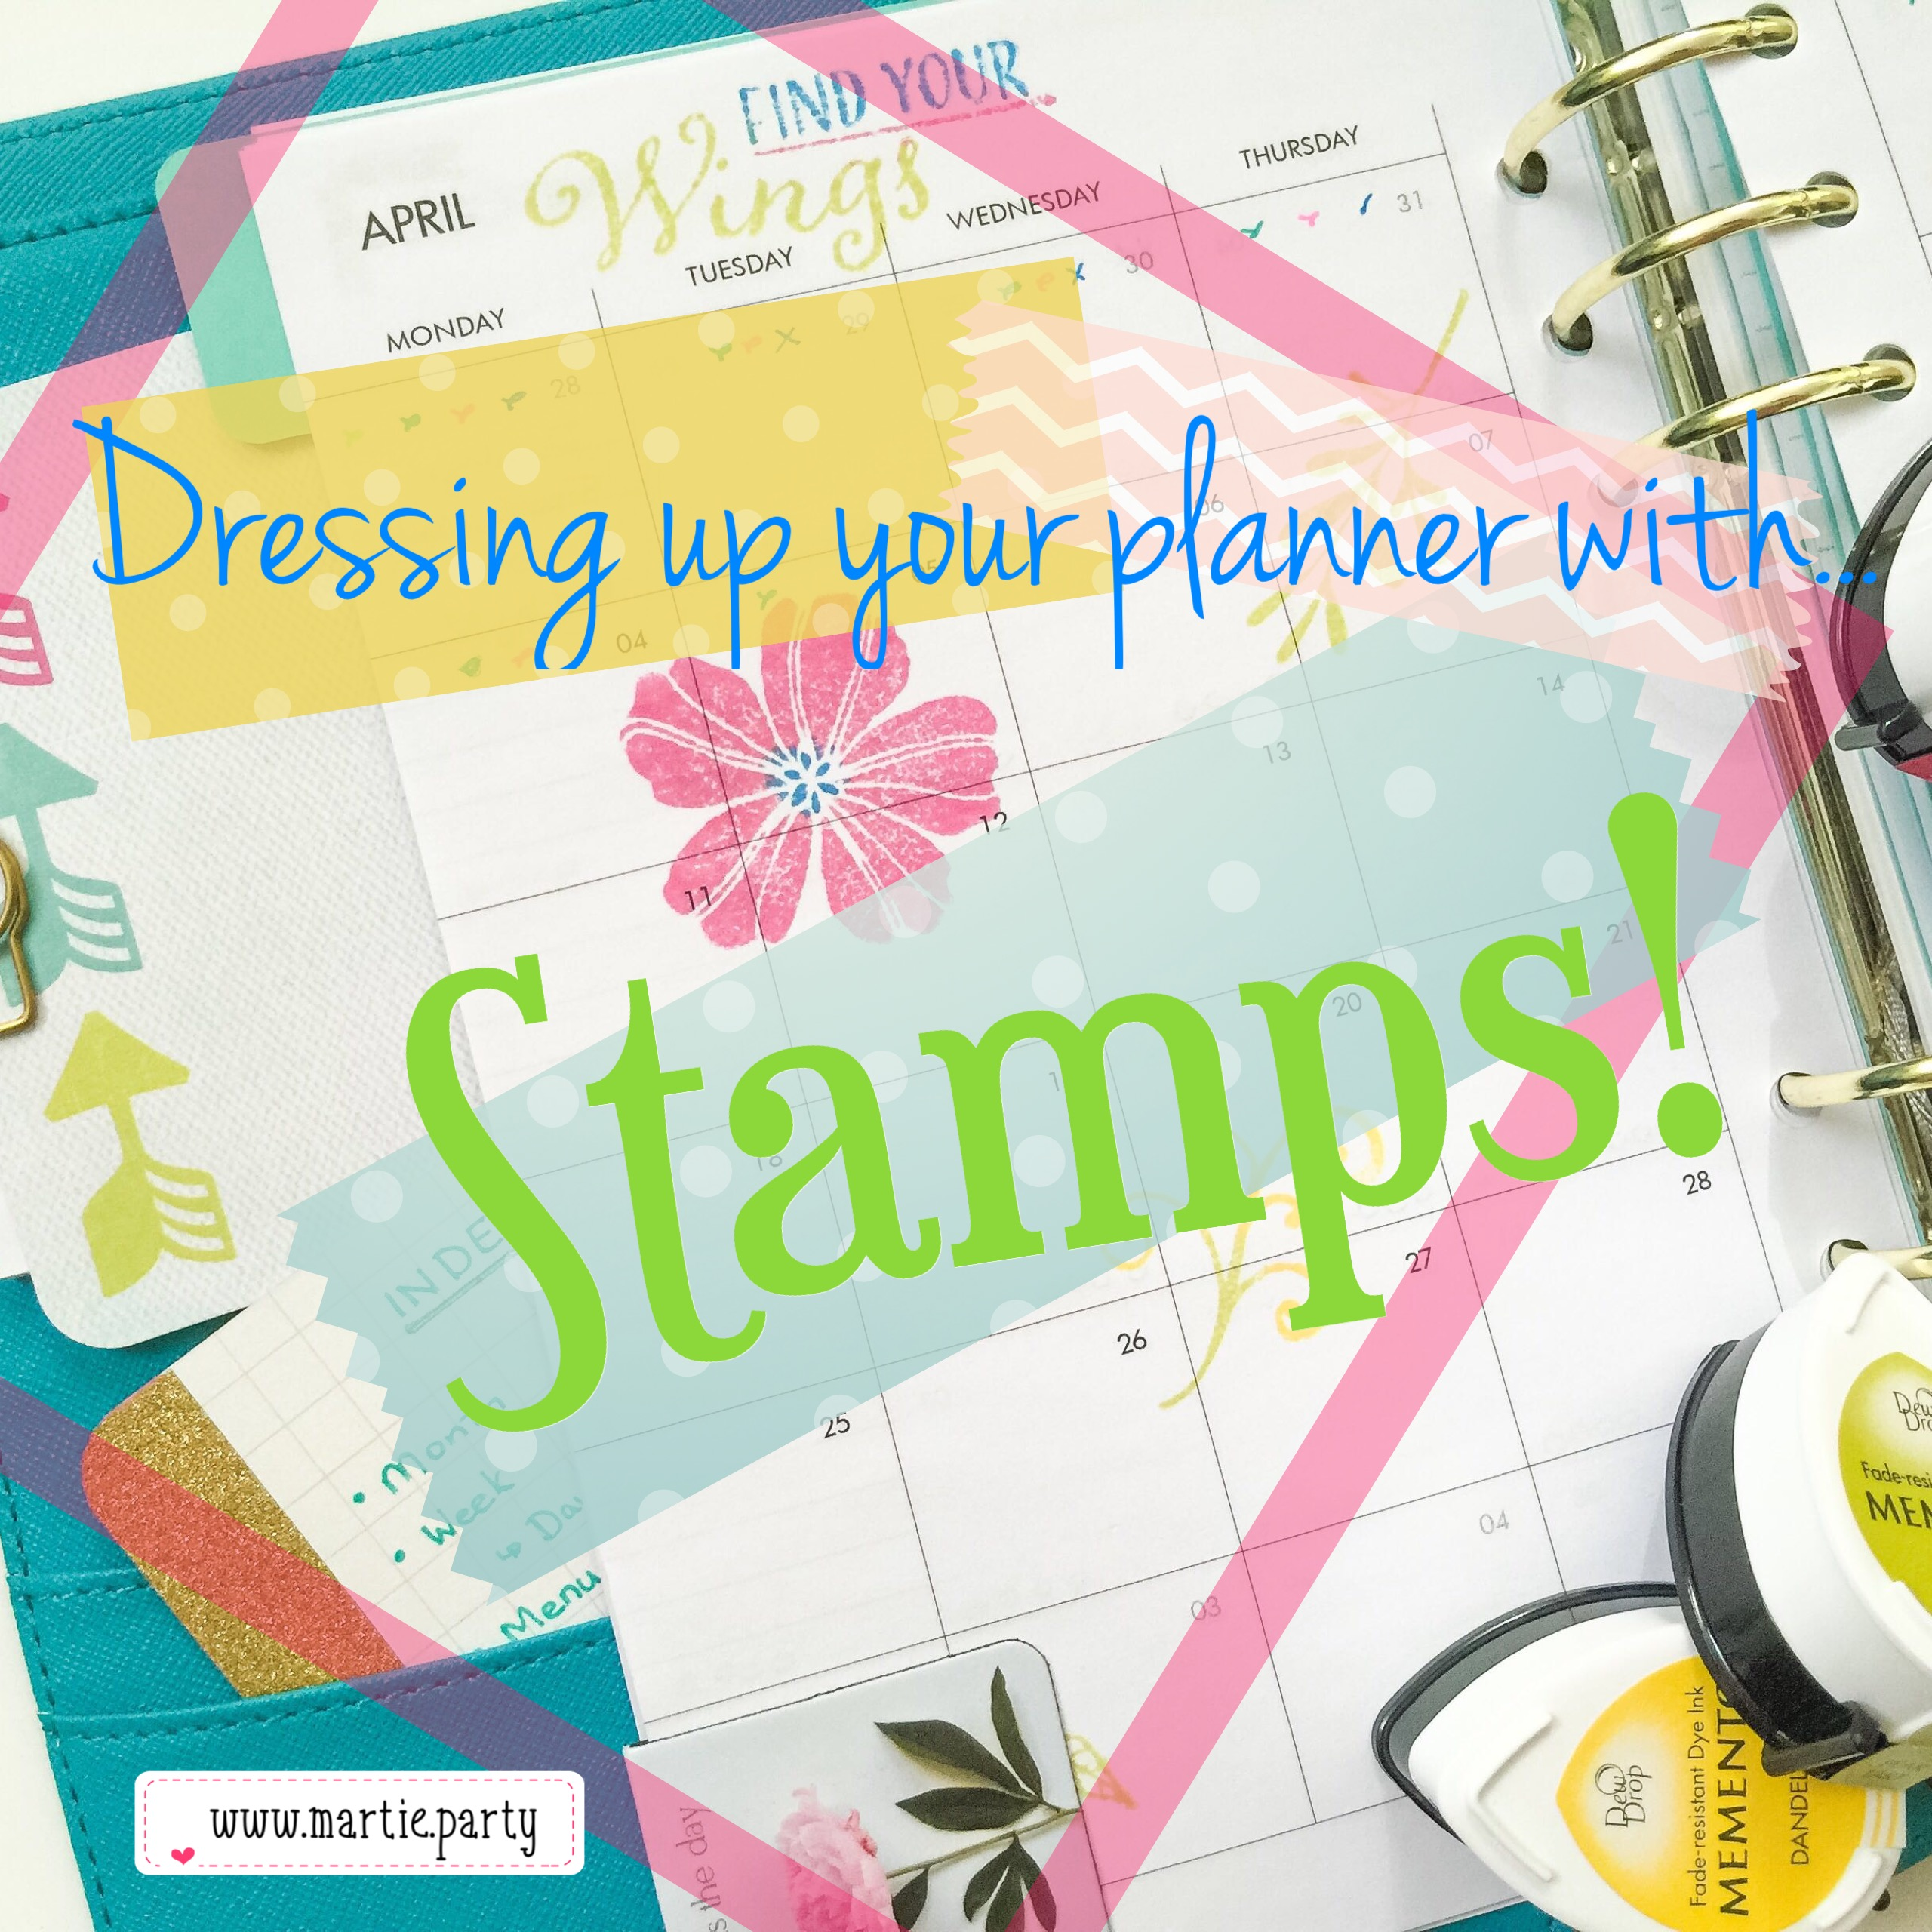 Dressing up your planner with... Stamps!